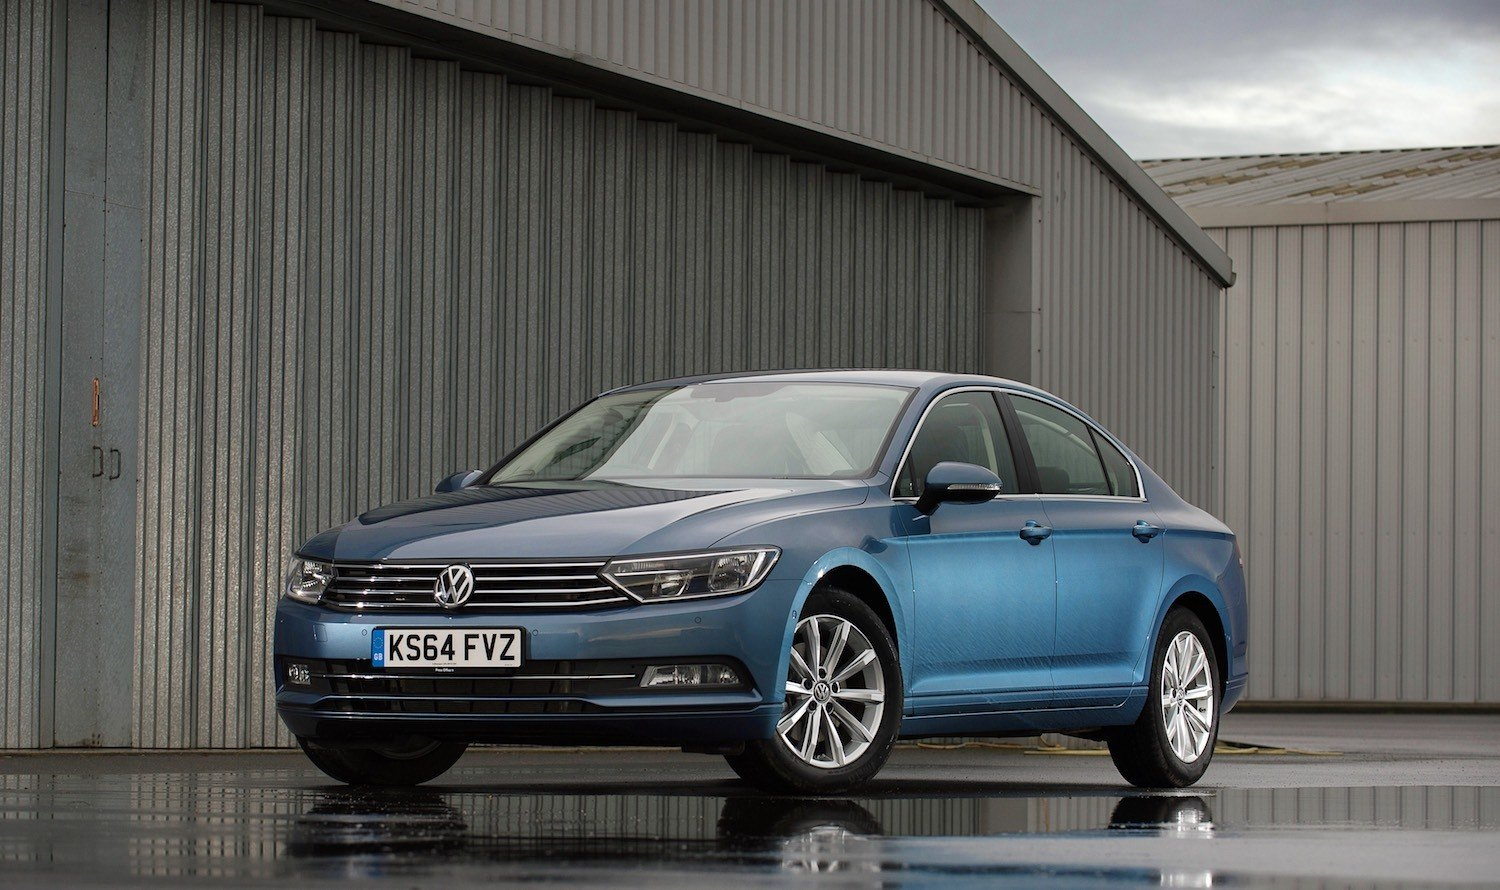 Tom Scanlan reviews the 2017 Volkswagen Passat 1